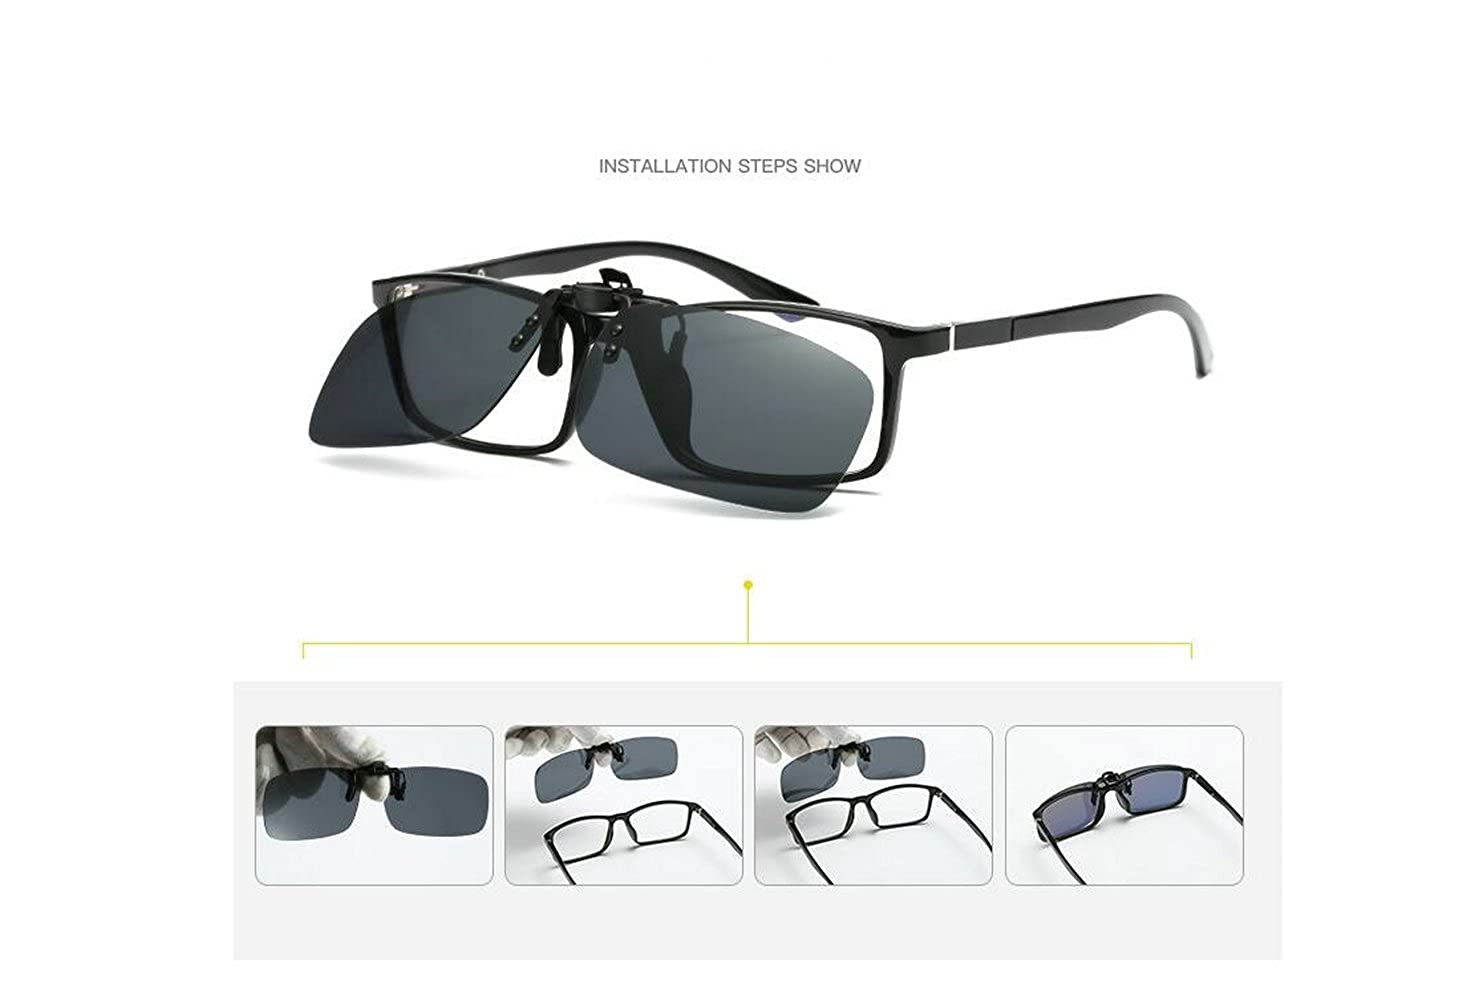 b12fff3d1a ... Polarized Clip-on Flip Up Metal Clip Rimless Sunglasses for  Prescription Glasses Outdoor Walking Driving Fishing Cycling (Night vision  Yellow + Black + ...